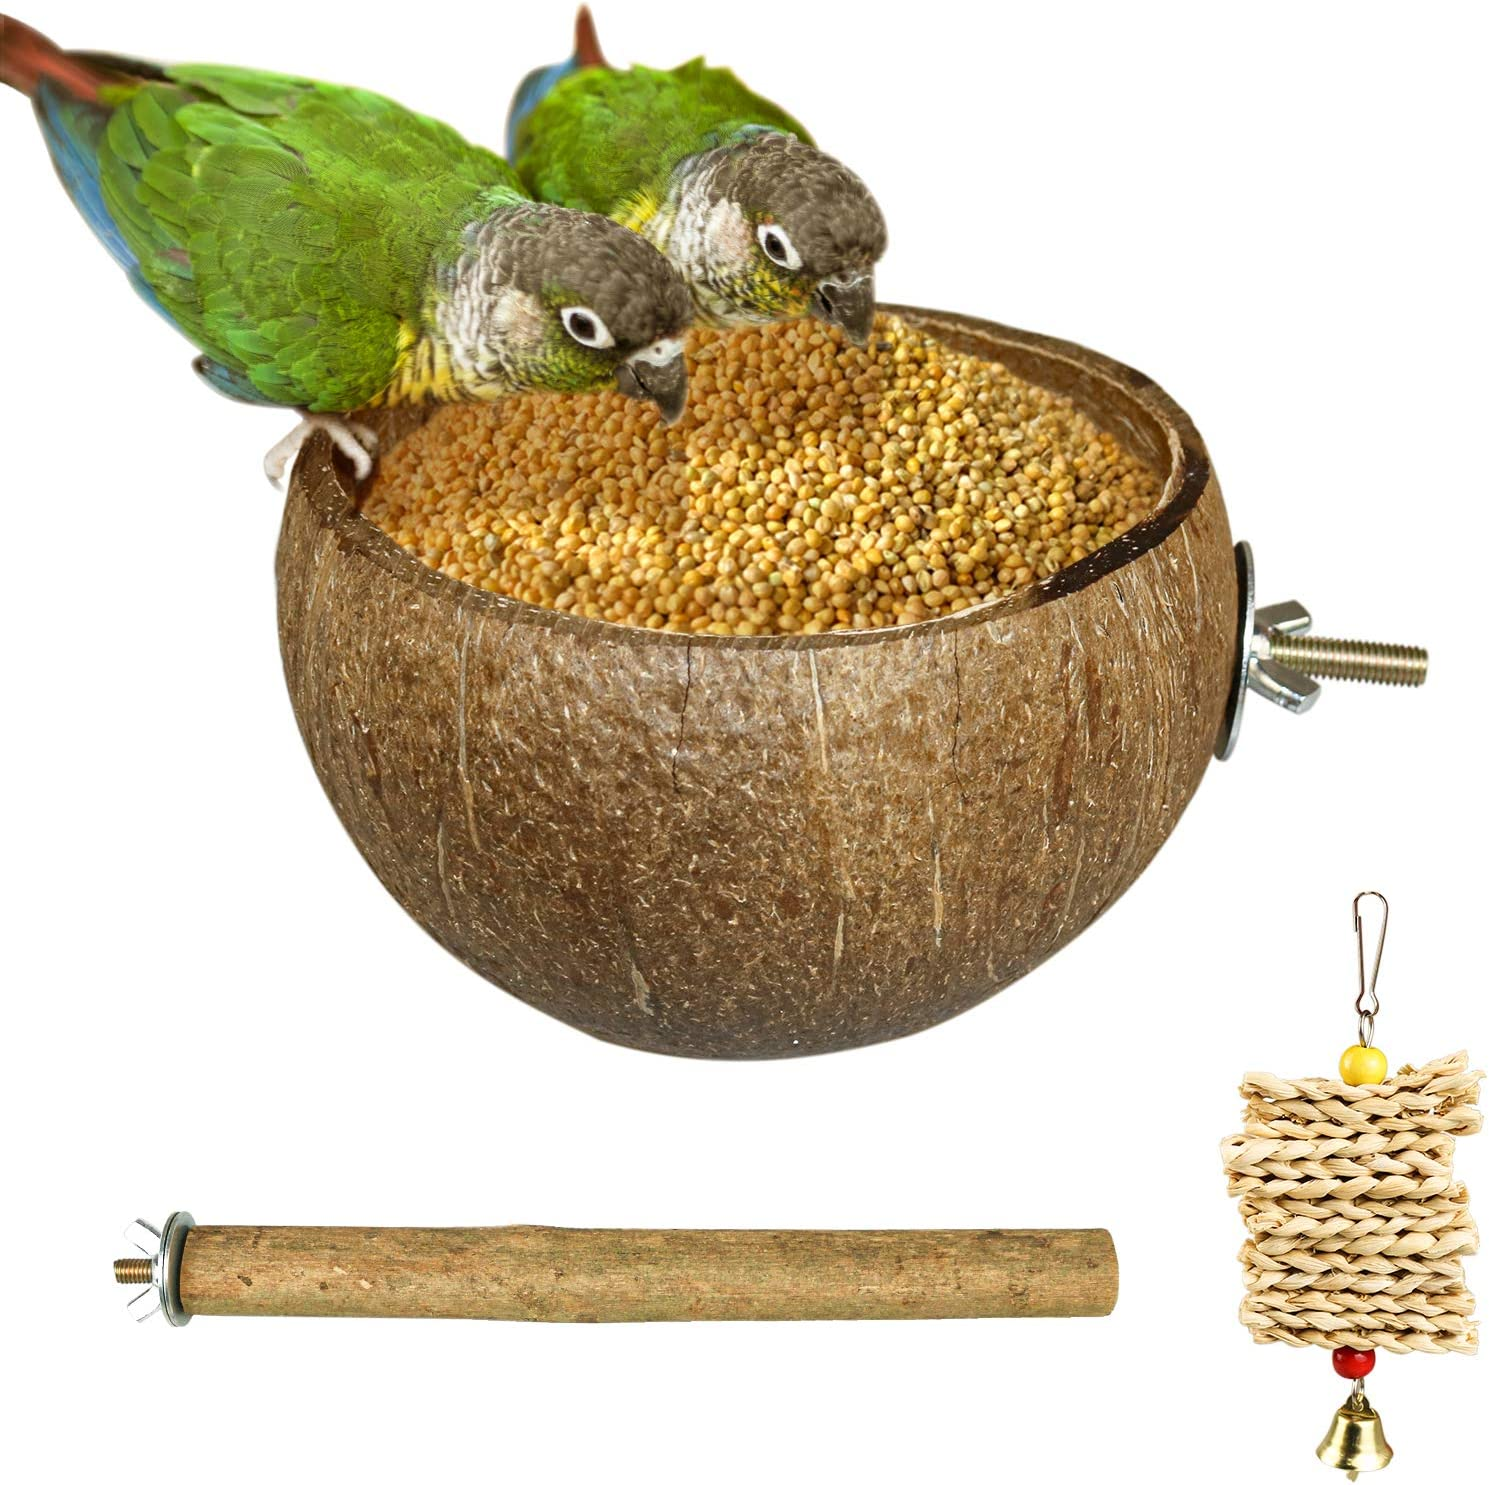 3 Packs Parrot Coconut Feeder Set,Natural Coconut Parrot Feeding Bowl Cotton Rope Stand Circle Station Board Suitable for Small Medium Parakeet,cocktiel,Lovebird (Style-1)